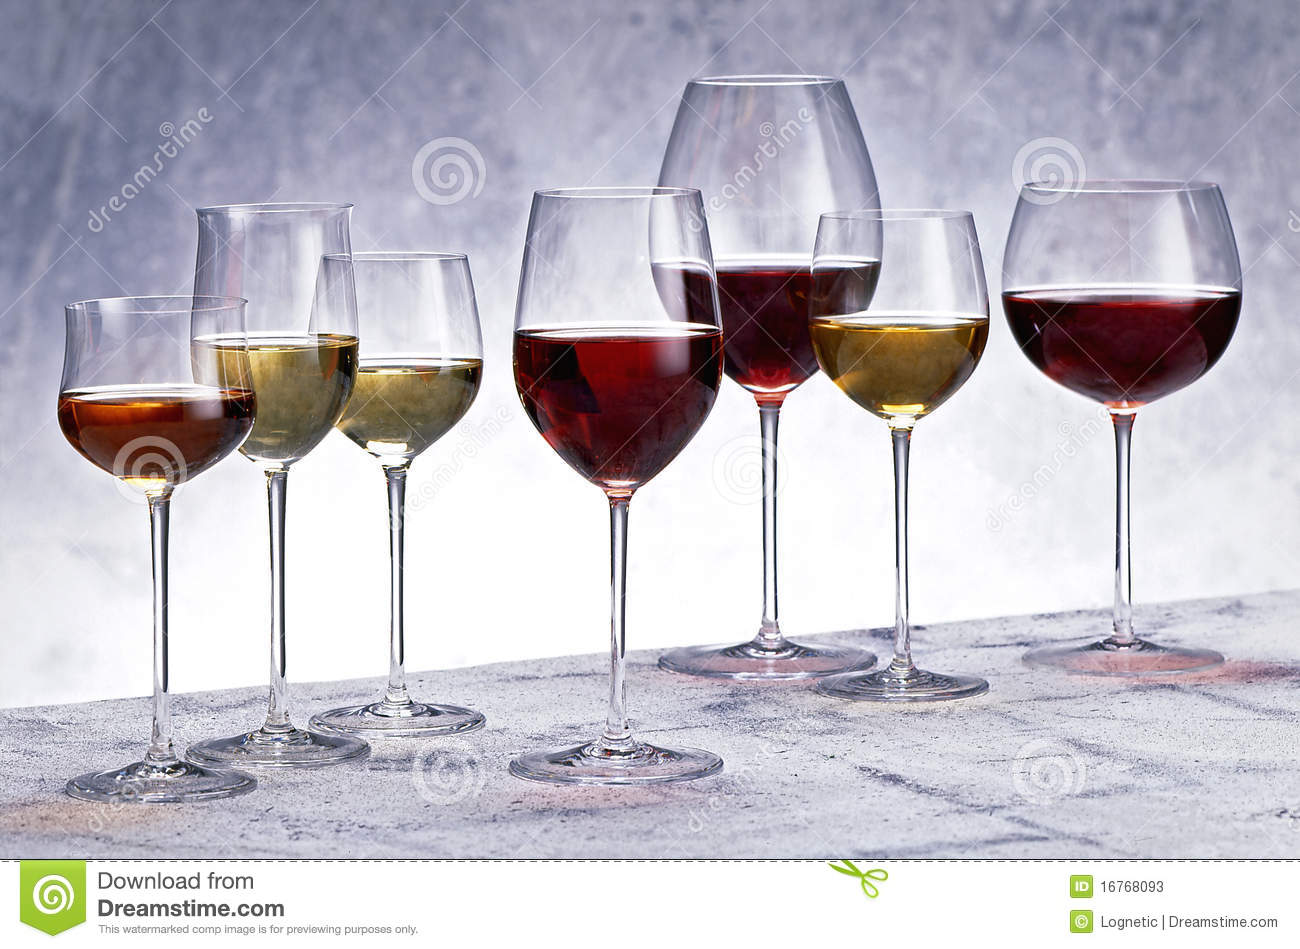 Glasses Of White And Red Wine Stock Photos - Image: 16768093